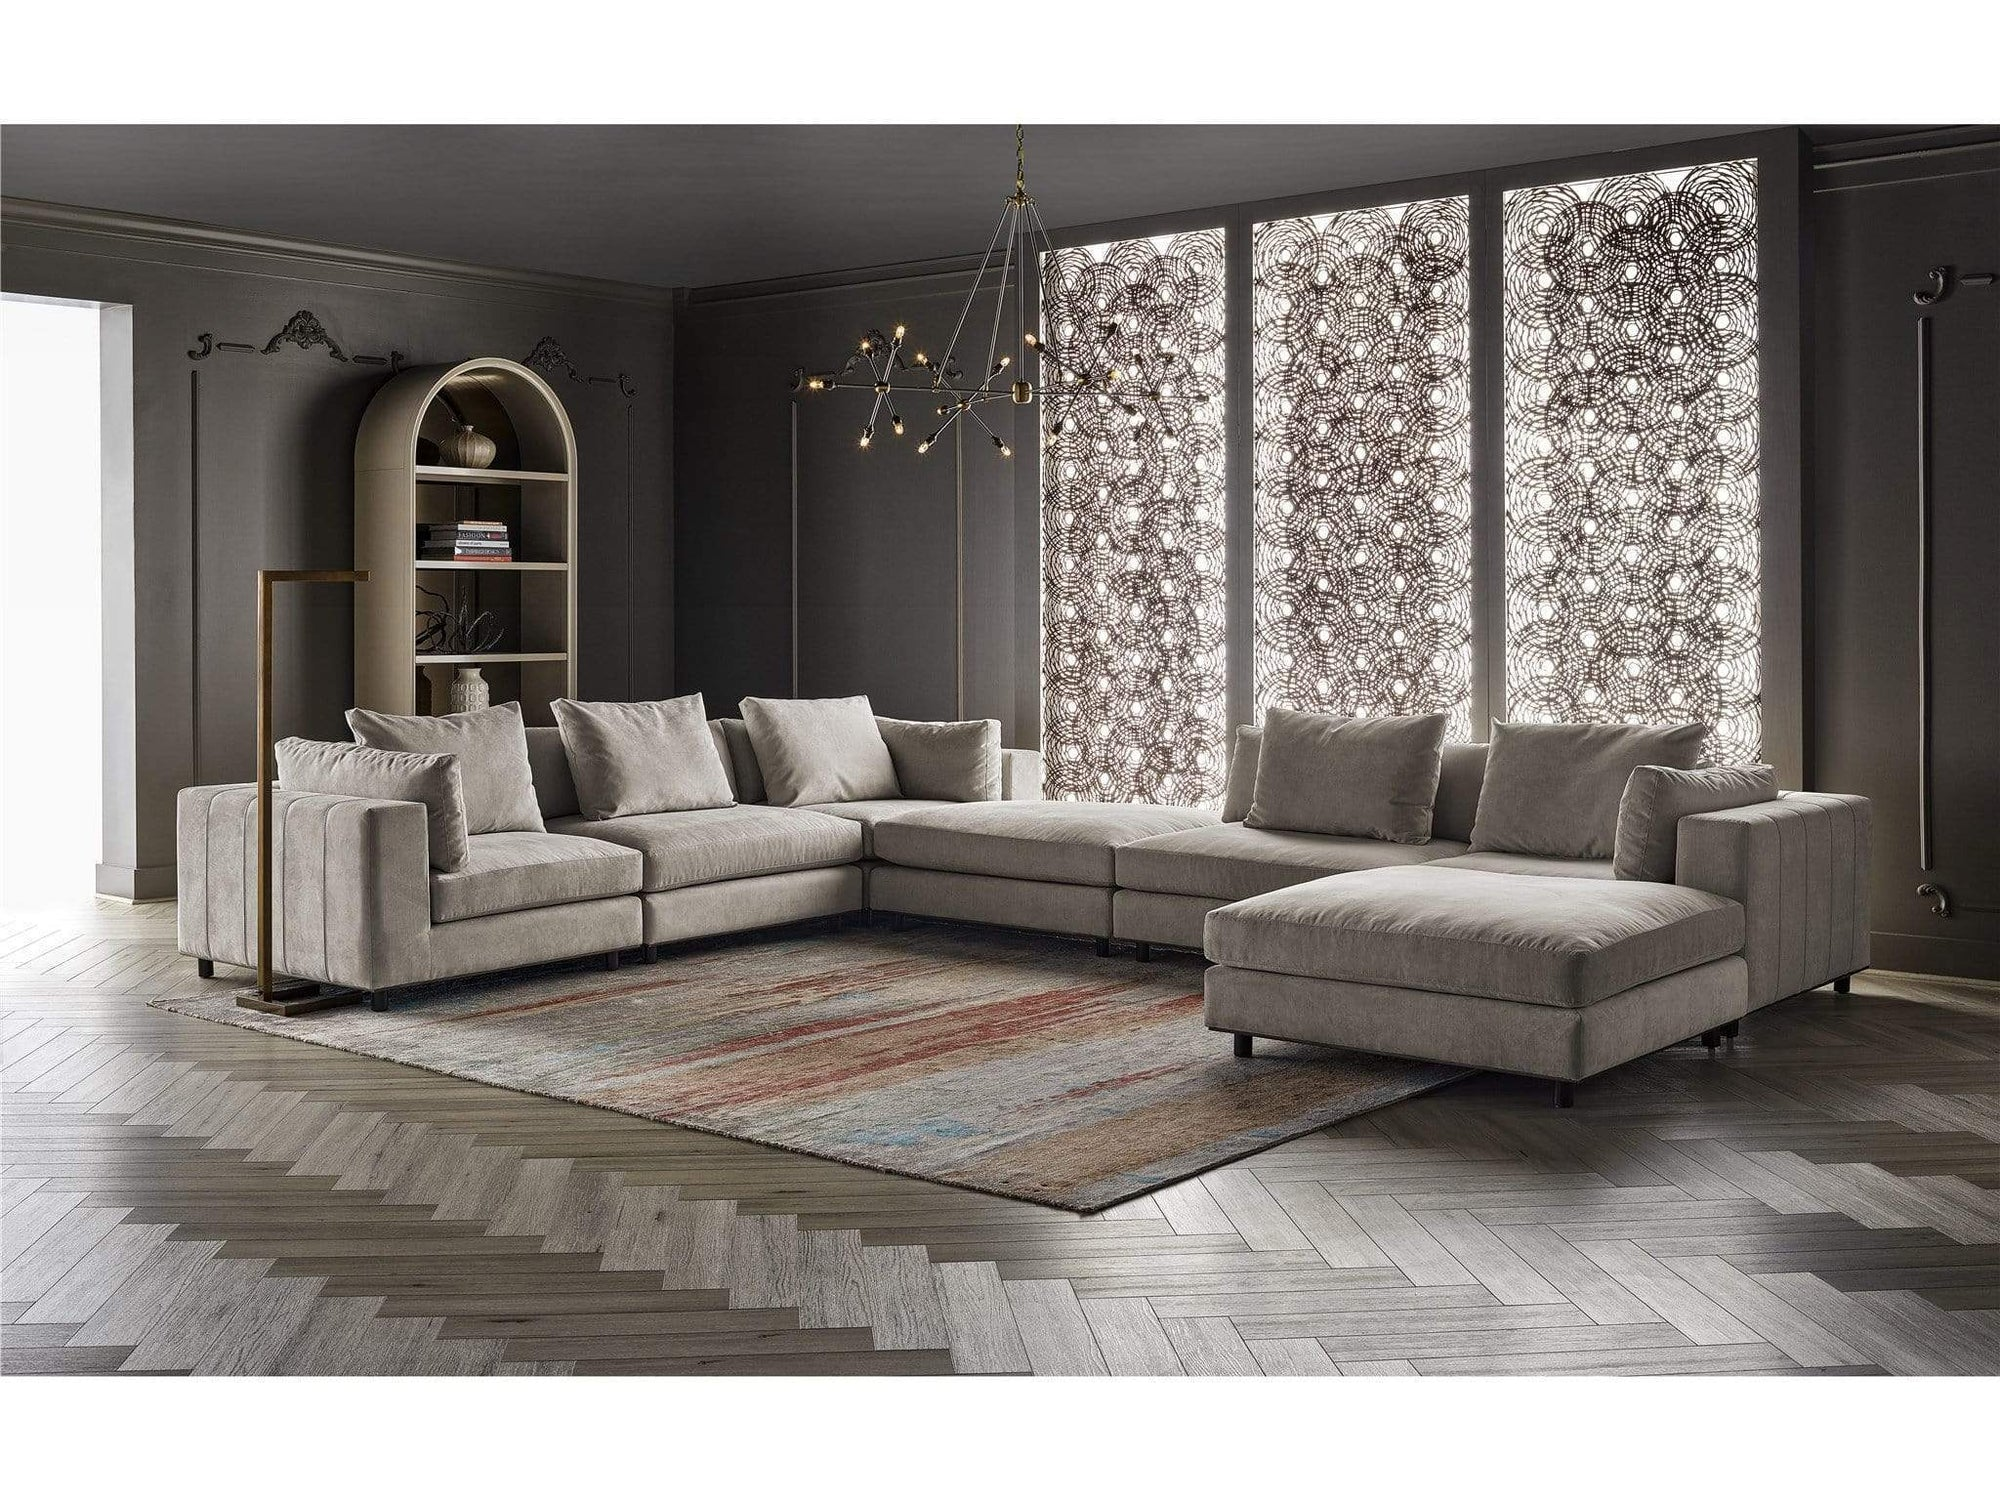 Alchemy Living Alchemy Living Urbain Rome Sectional - Ivory 807223